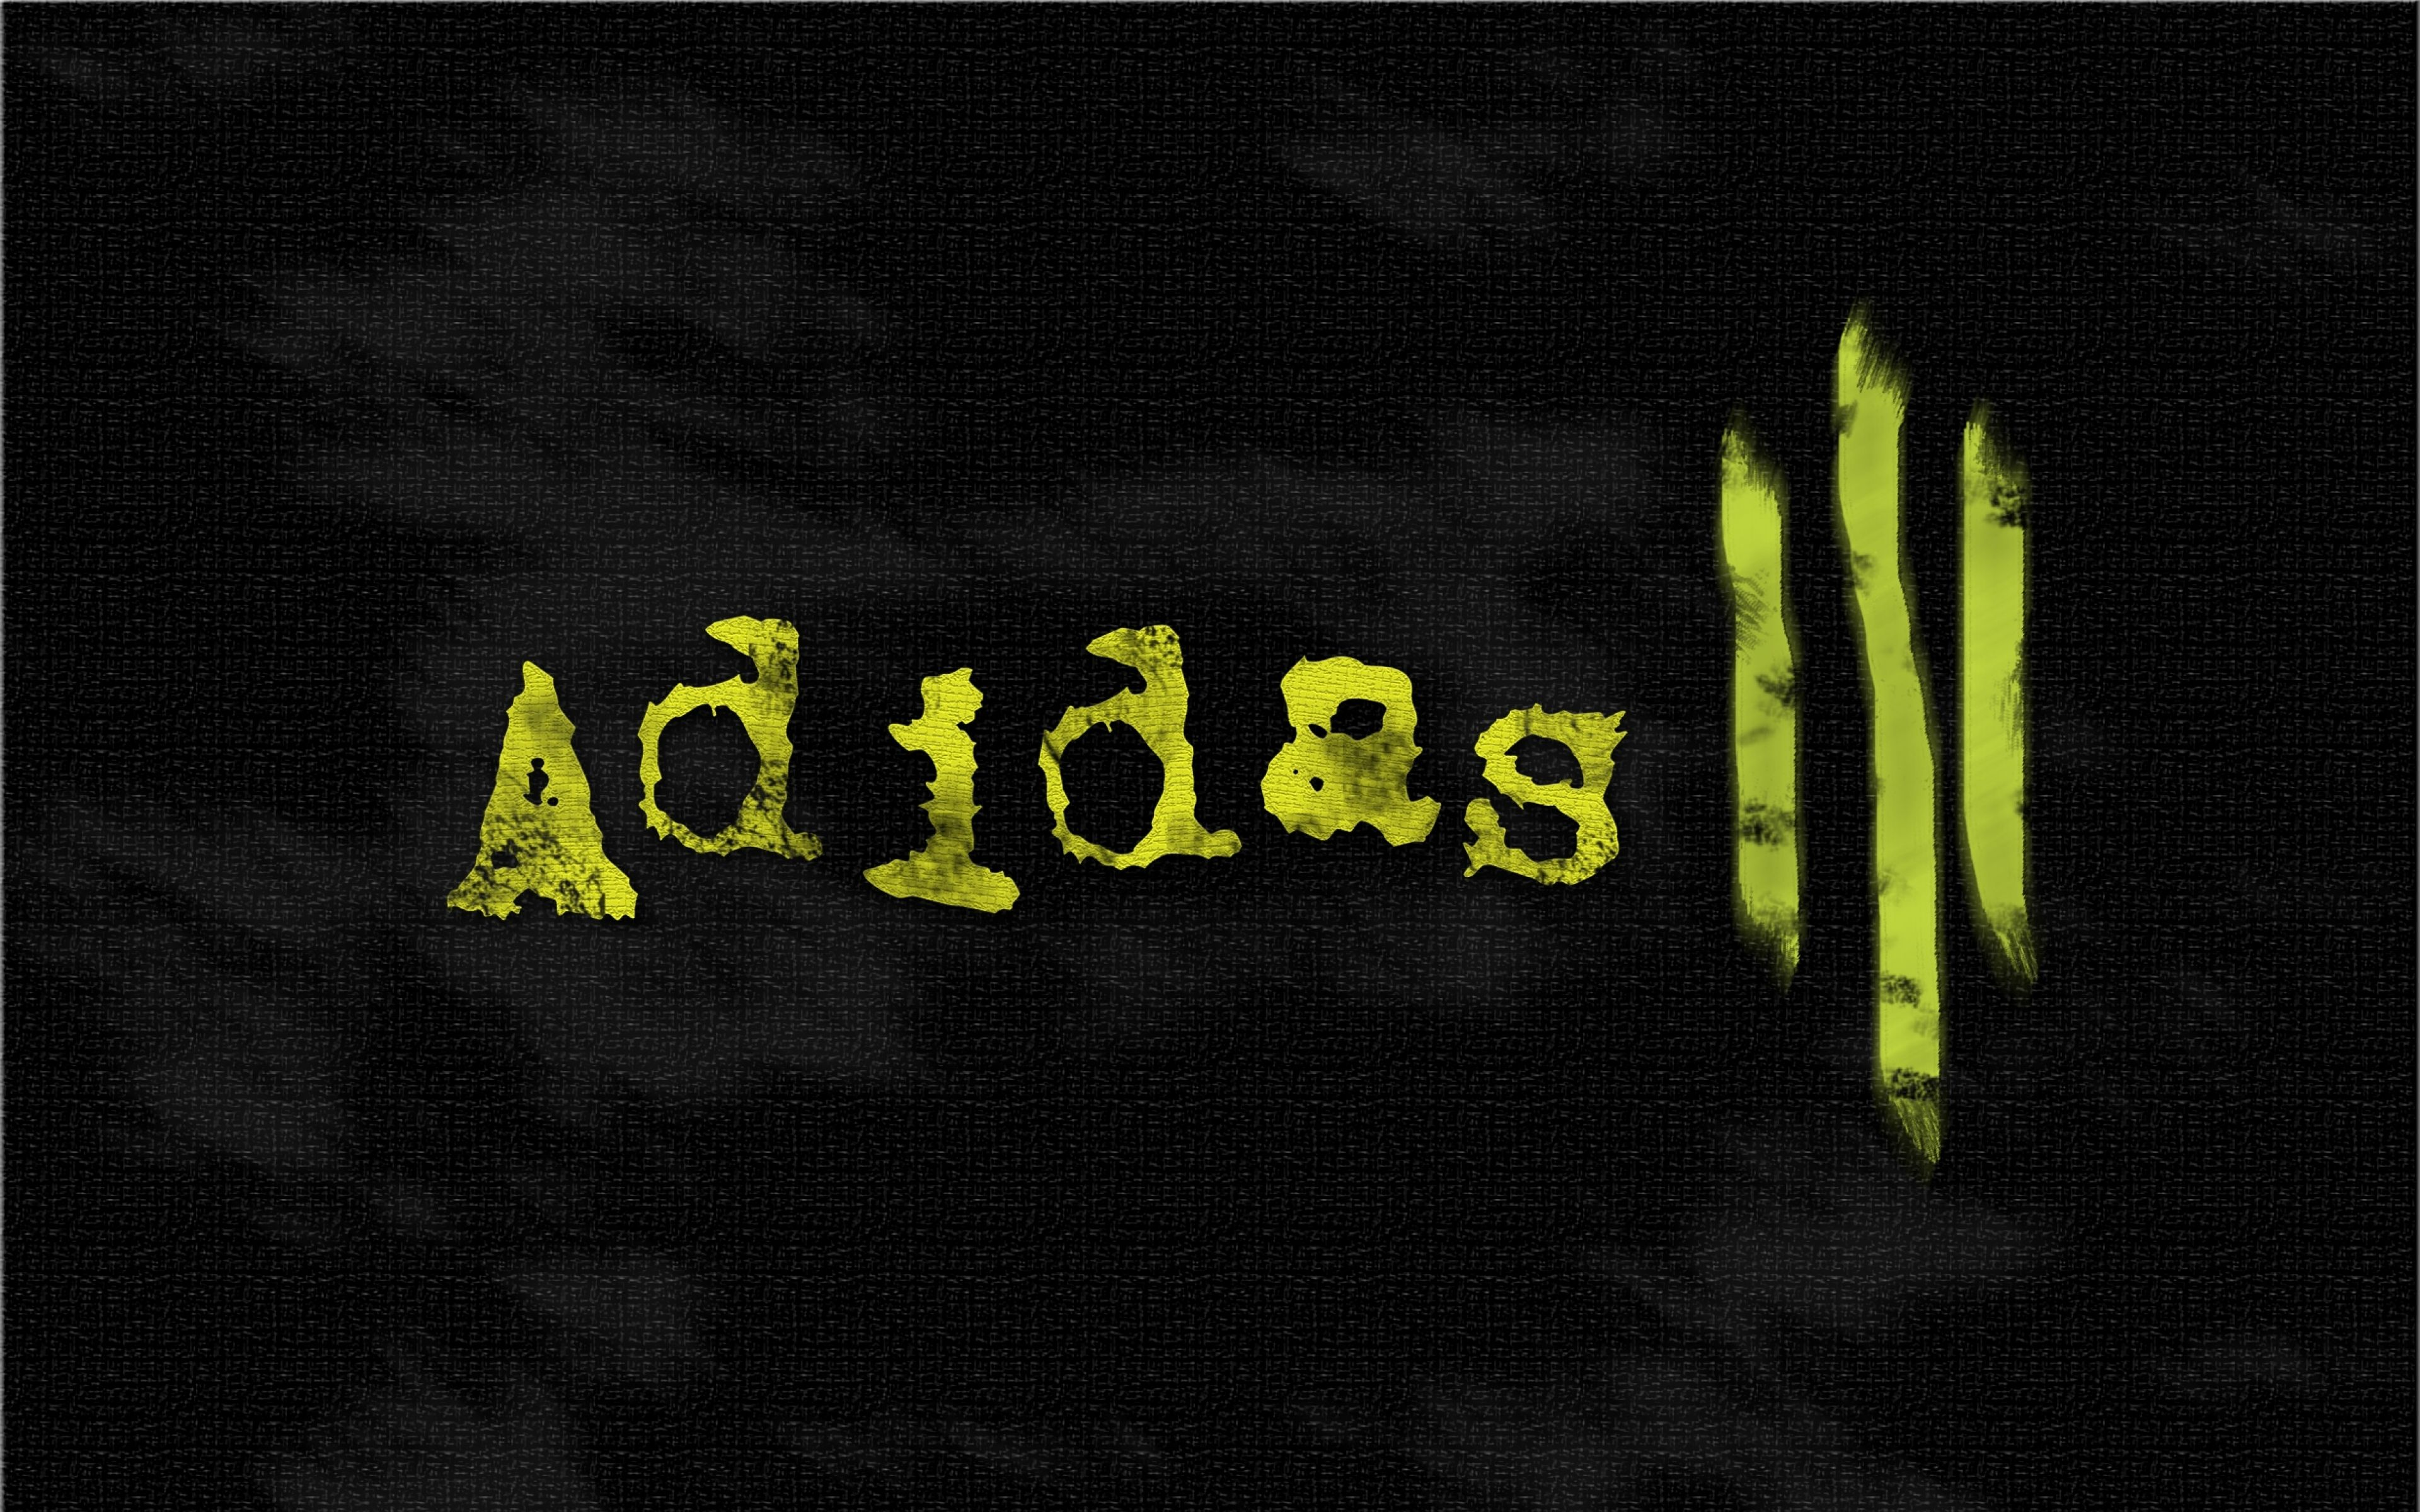 Download Wallpaper 3840x2400 Adidas, Firm, Sport, Shoes